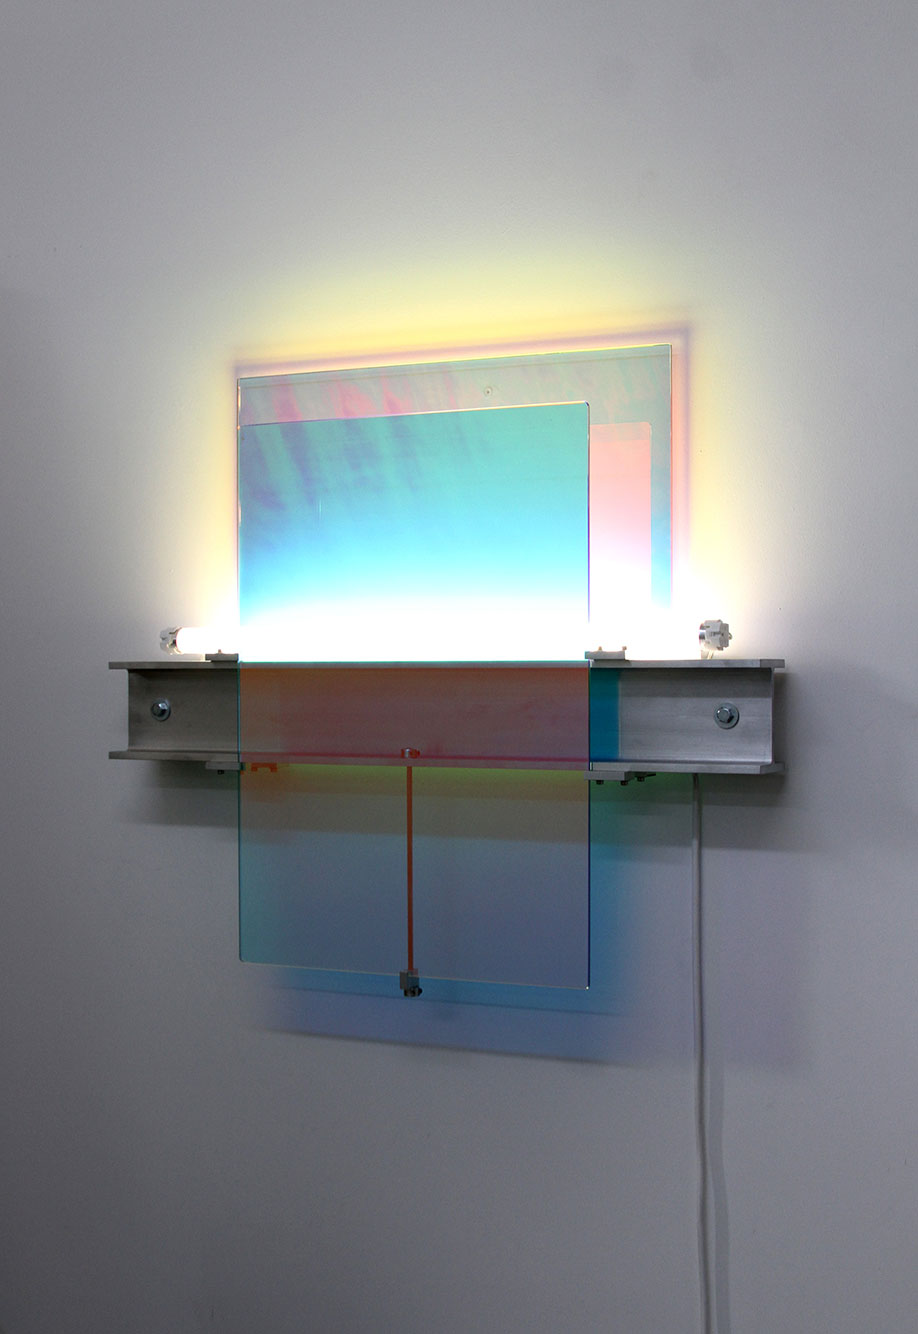 <b>Title: </b>DG07<br /><b>Year: </b>2016<br /><b>Medium: </b>Dichroic glass, aluminium universal beam, fluorescent light, fittings and power supply<br /><b>Size: </b>70 x 60 x 12 cm